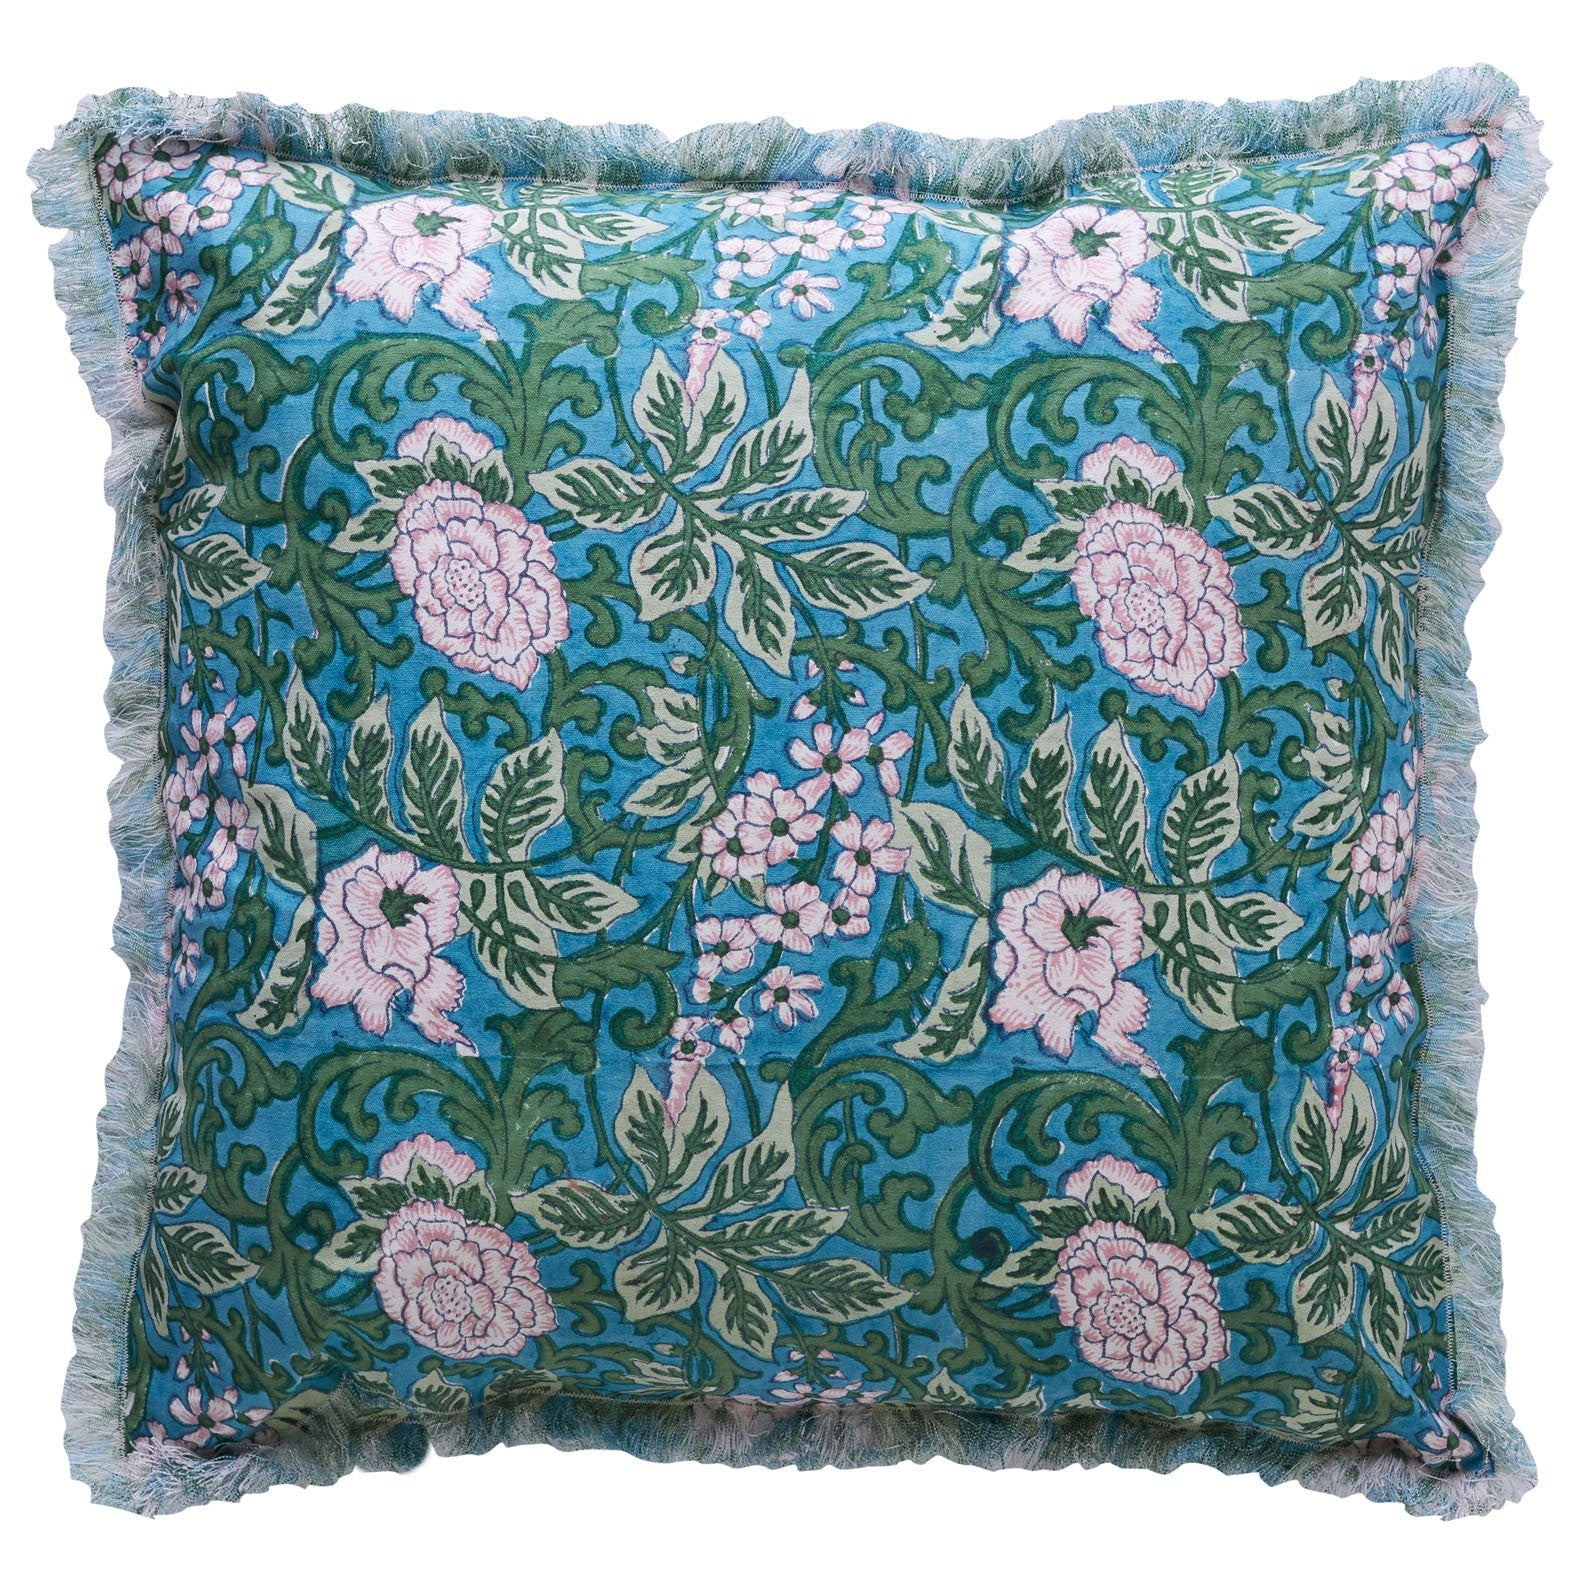 Marbella Cushion